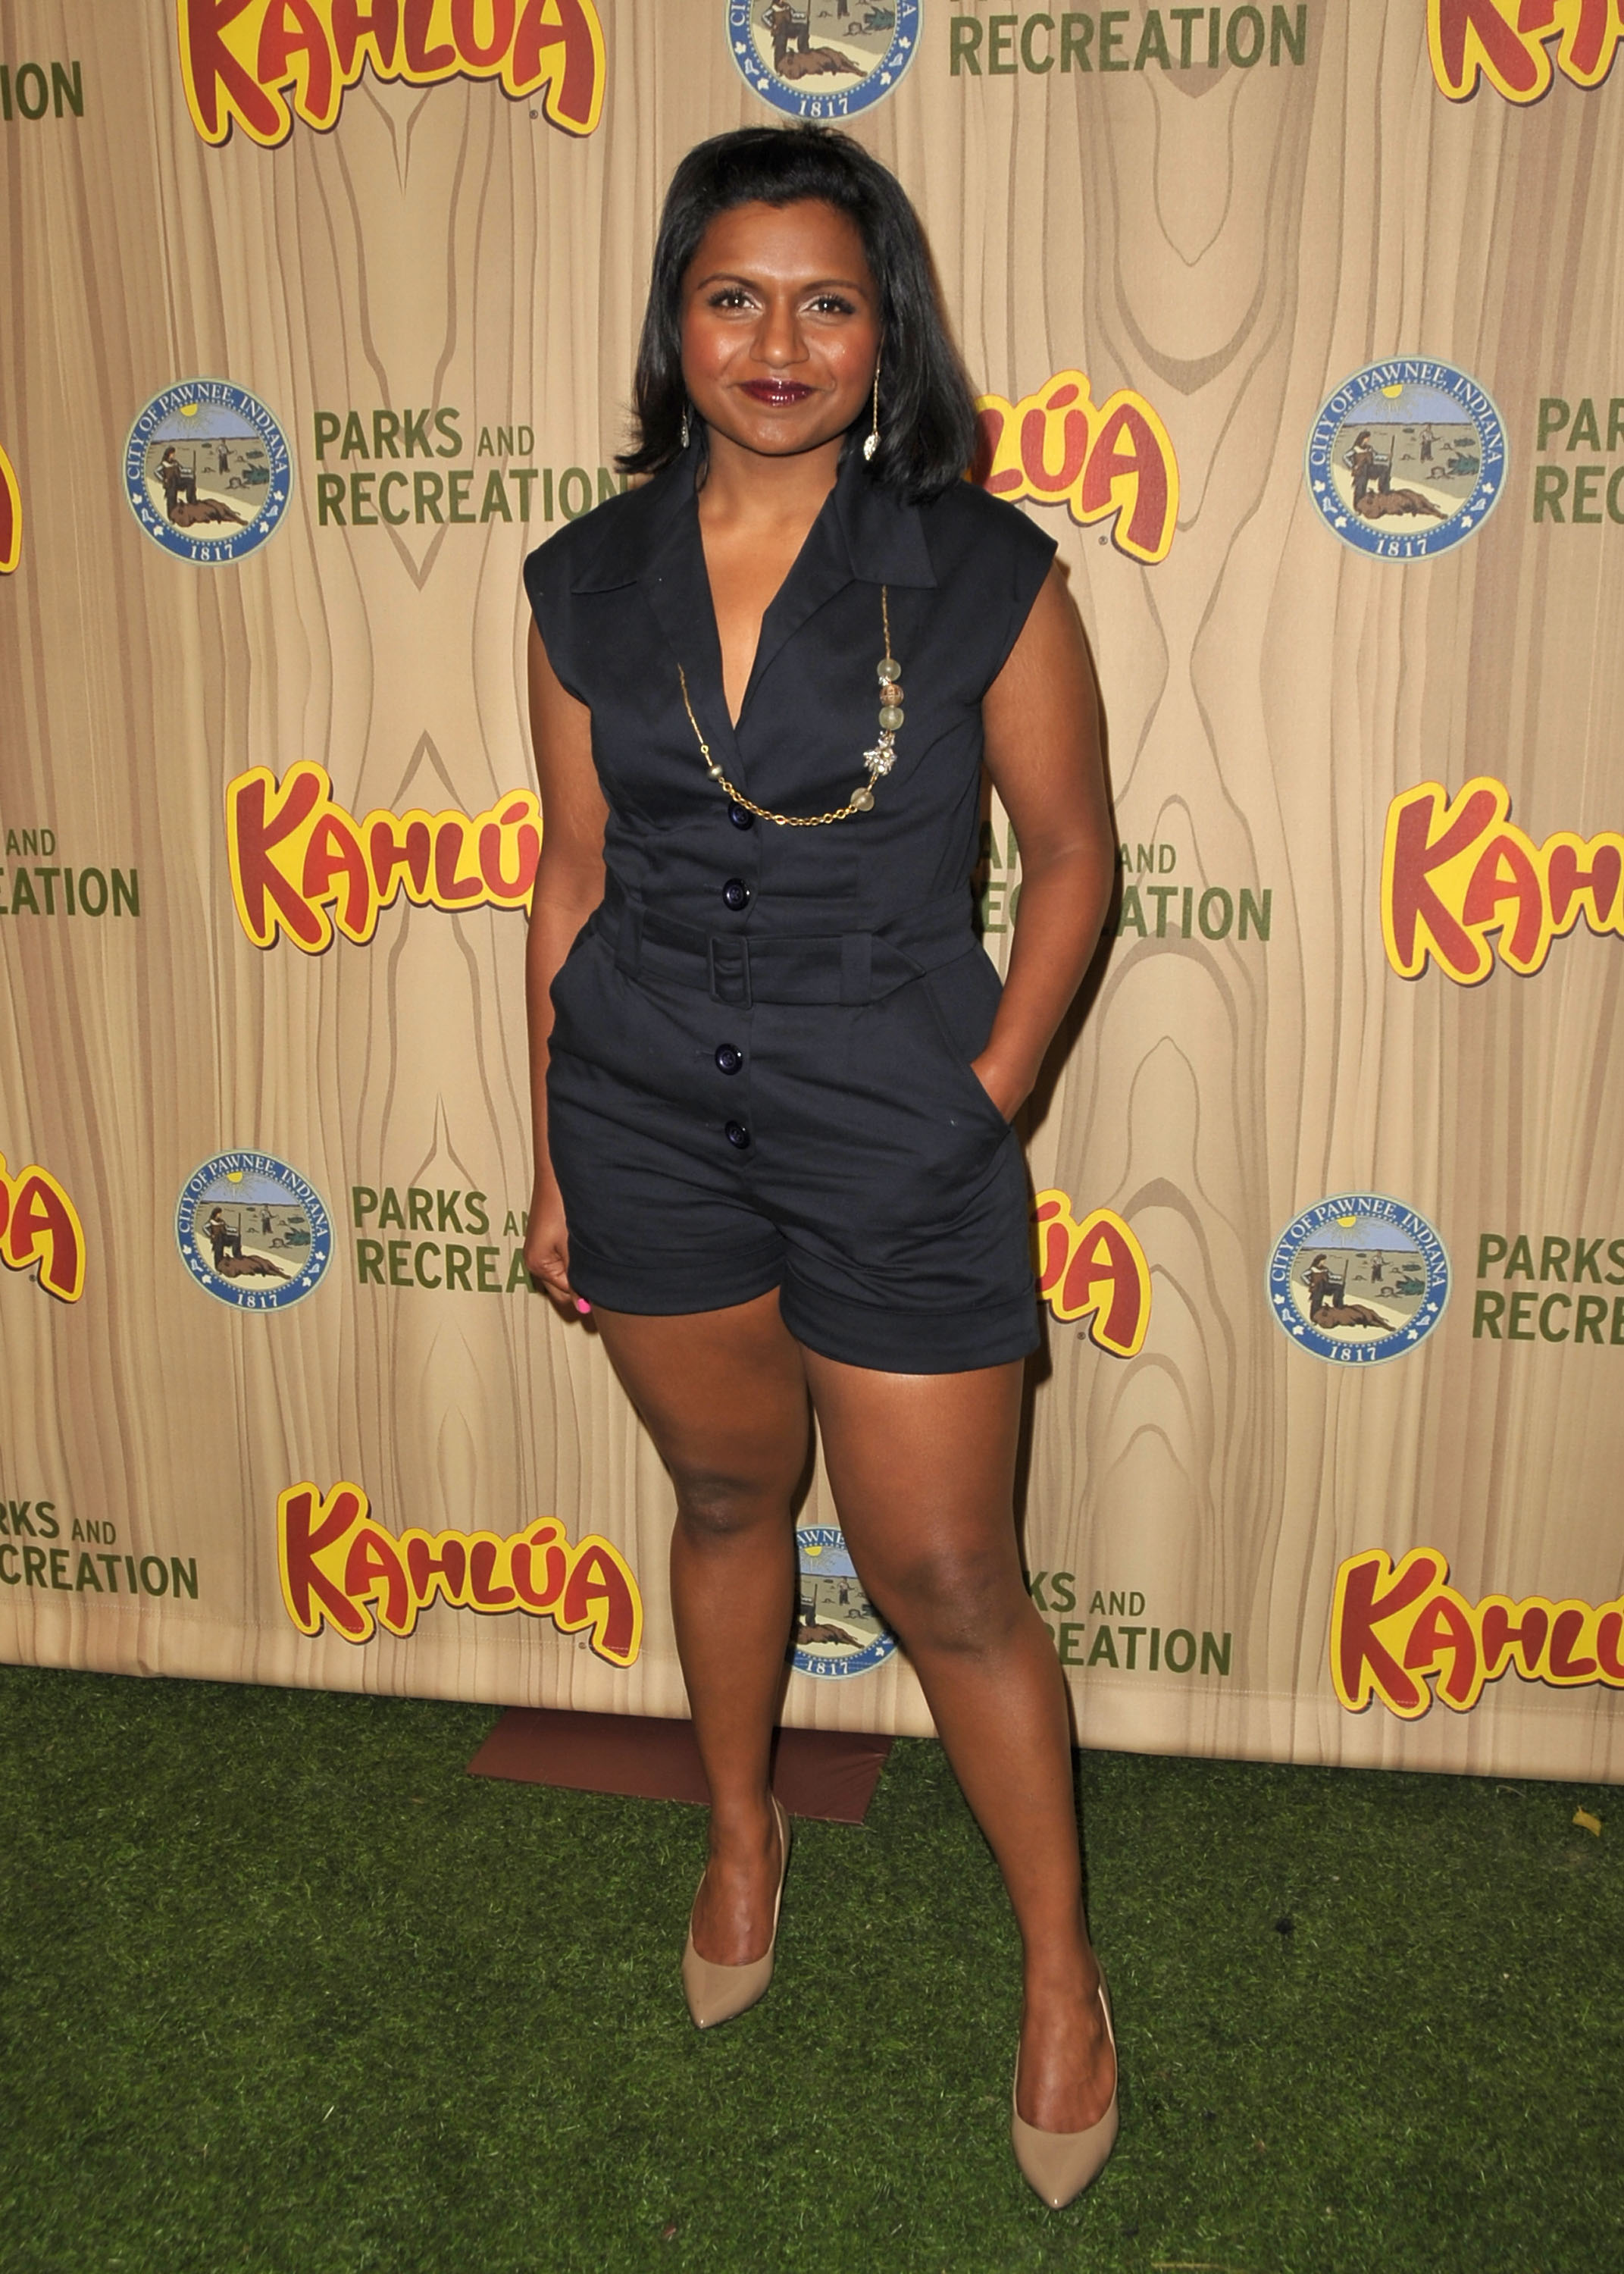 mindy kaling buzzfeedmindy kaling book, mindy kaling 2016, mindy kaling and bj novak, mindy kaling 2017, mindy kaling bj novak relationship, mindy kaling book read online, mindy kaling plastic, mindy kaling photos, mindy kaling why not me epub, mindy kaling wiki, mindy kaling greta gerwig, mindy kaling buzzfeed, mindy kaling arm, mindy kaling invisible, mindy kaling vogue, mindy kaling wdw, mindy kaling conan, mindy kaling inside out, mindy kaling epub, mindy kaling and bj novak tweets